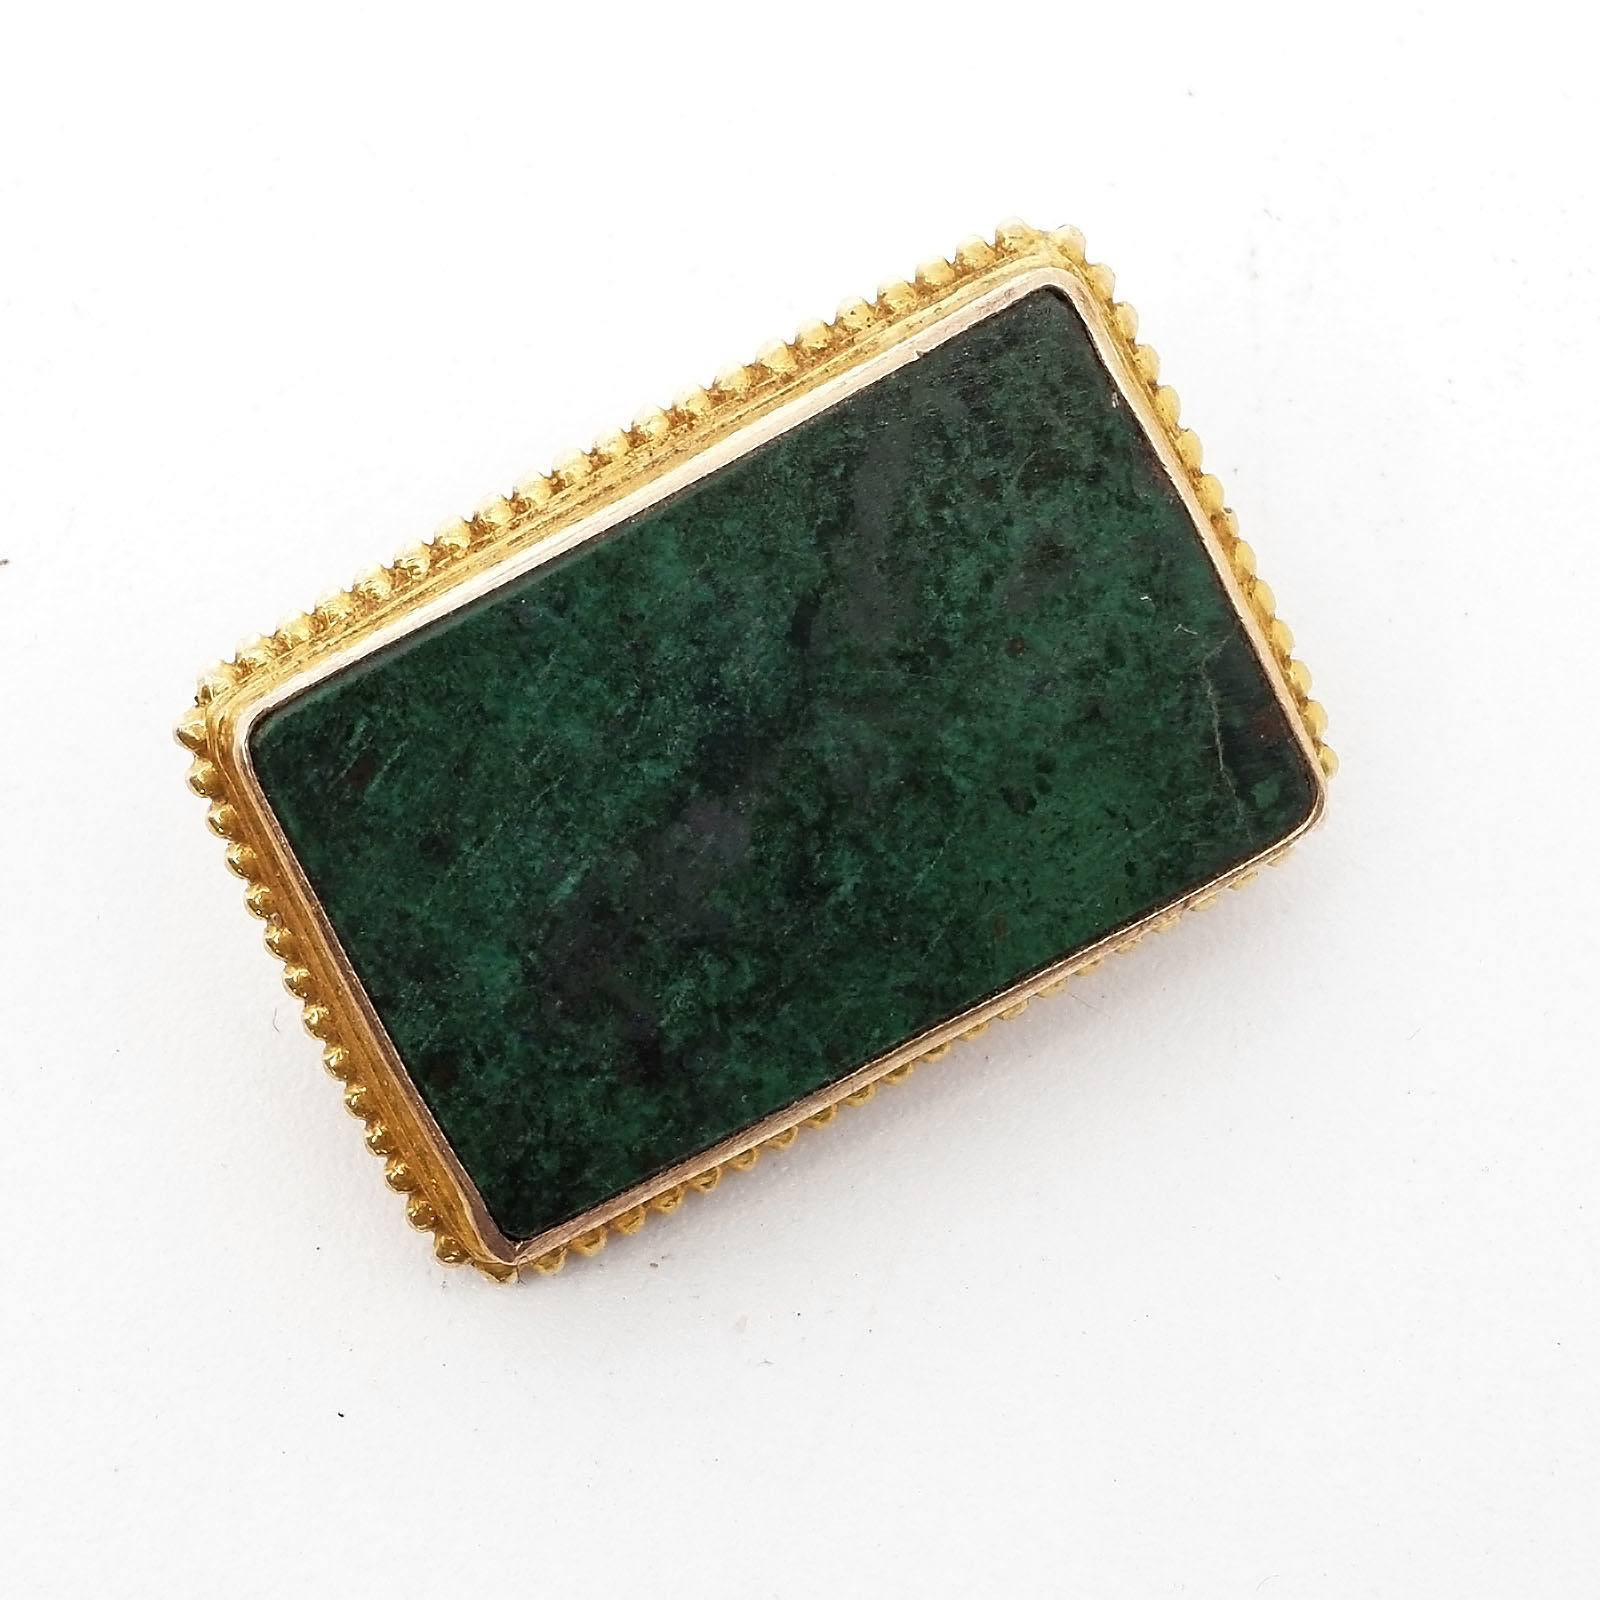 '9ct Yellow Gold Brooch with Small Square Cabochon of Natural Green Opaque Semi Precious Gem'